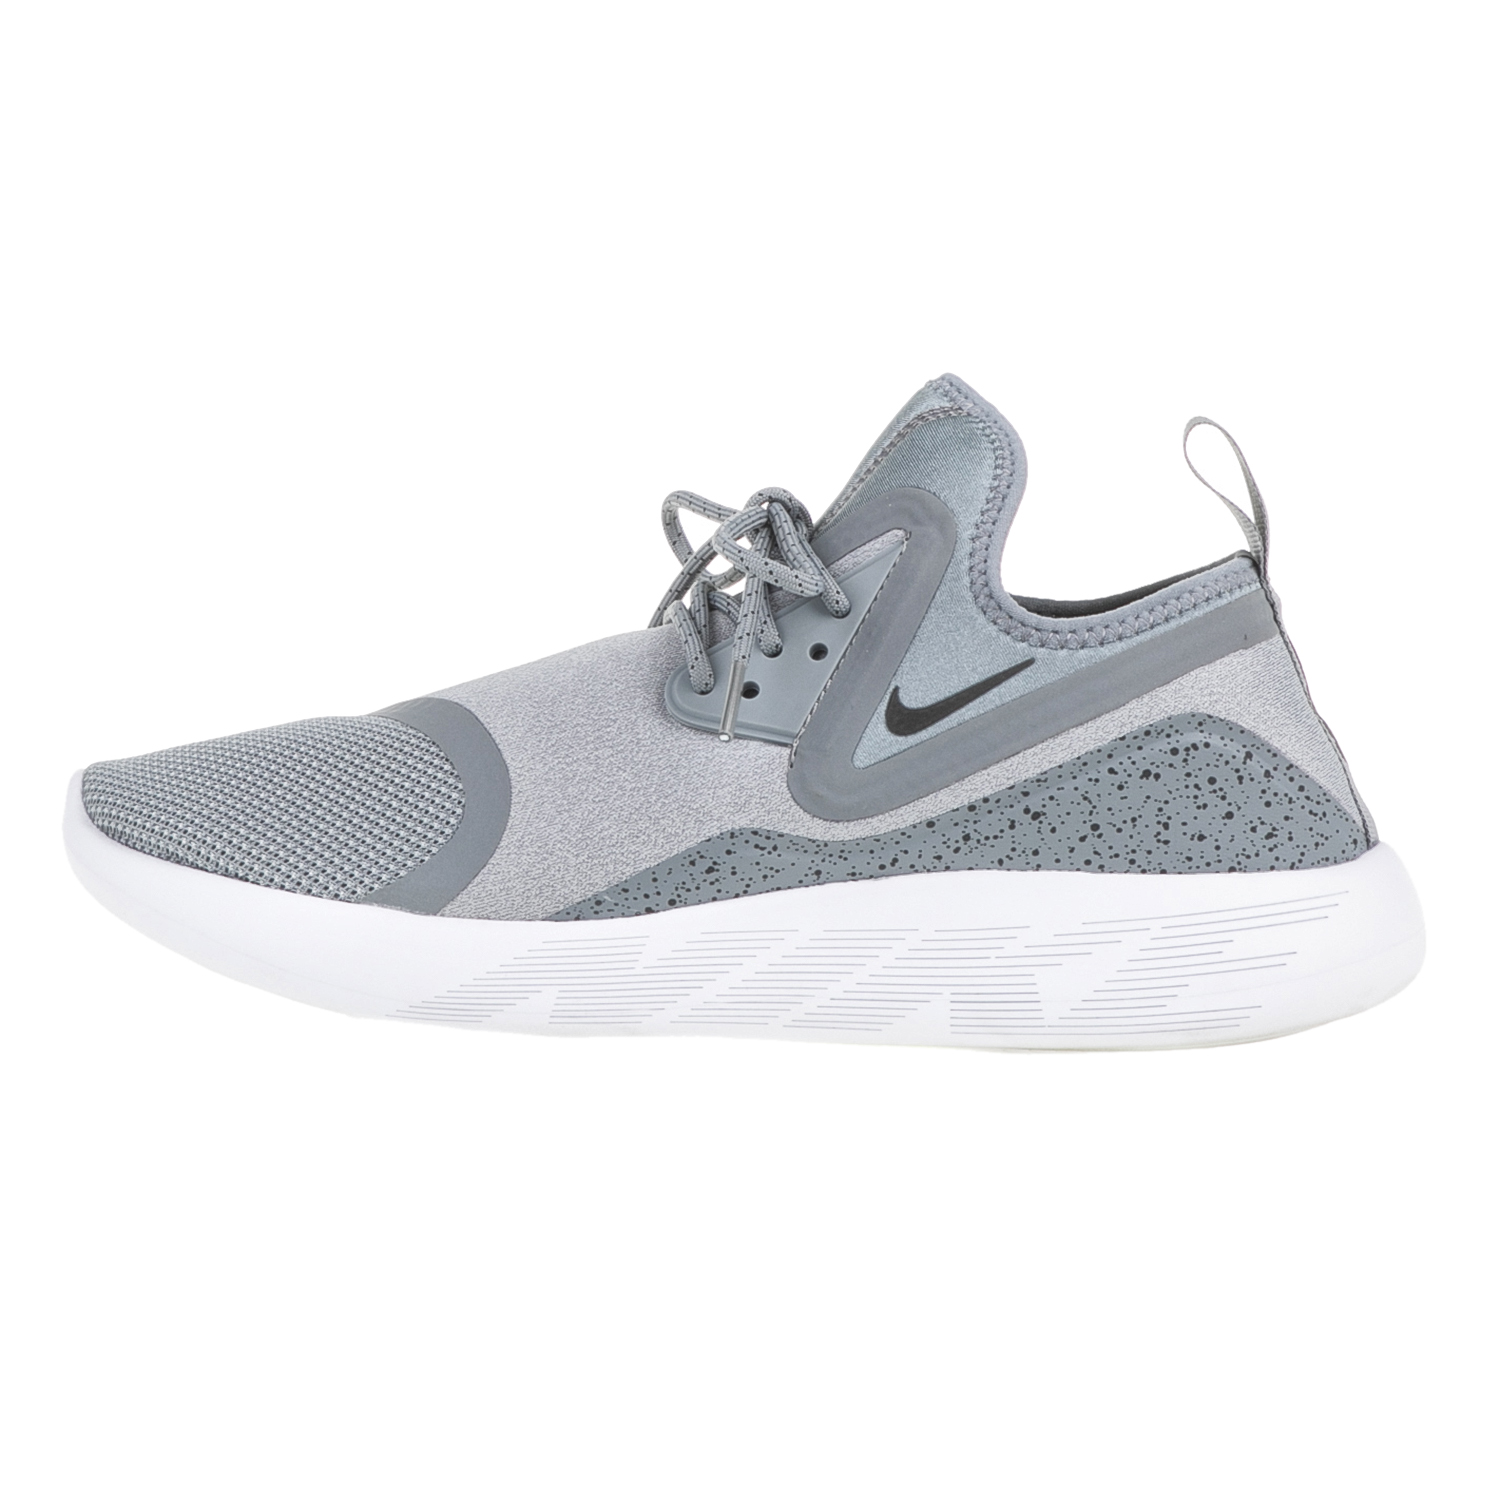 9026d2bfb2 NIKE – Ανδρικά αθλητικά παπούτσια NIKE LUNARCHARGE ESSENTIAL γκρι Ανδρικά  Παπούτσια Αθλητικά Running